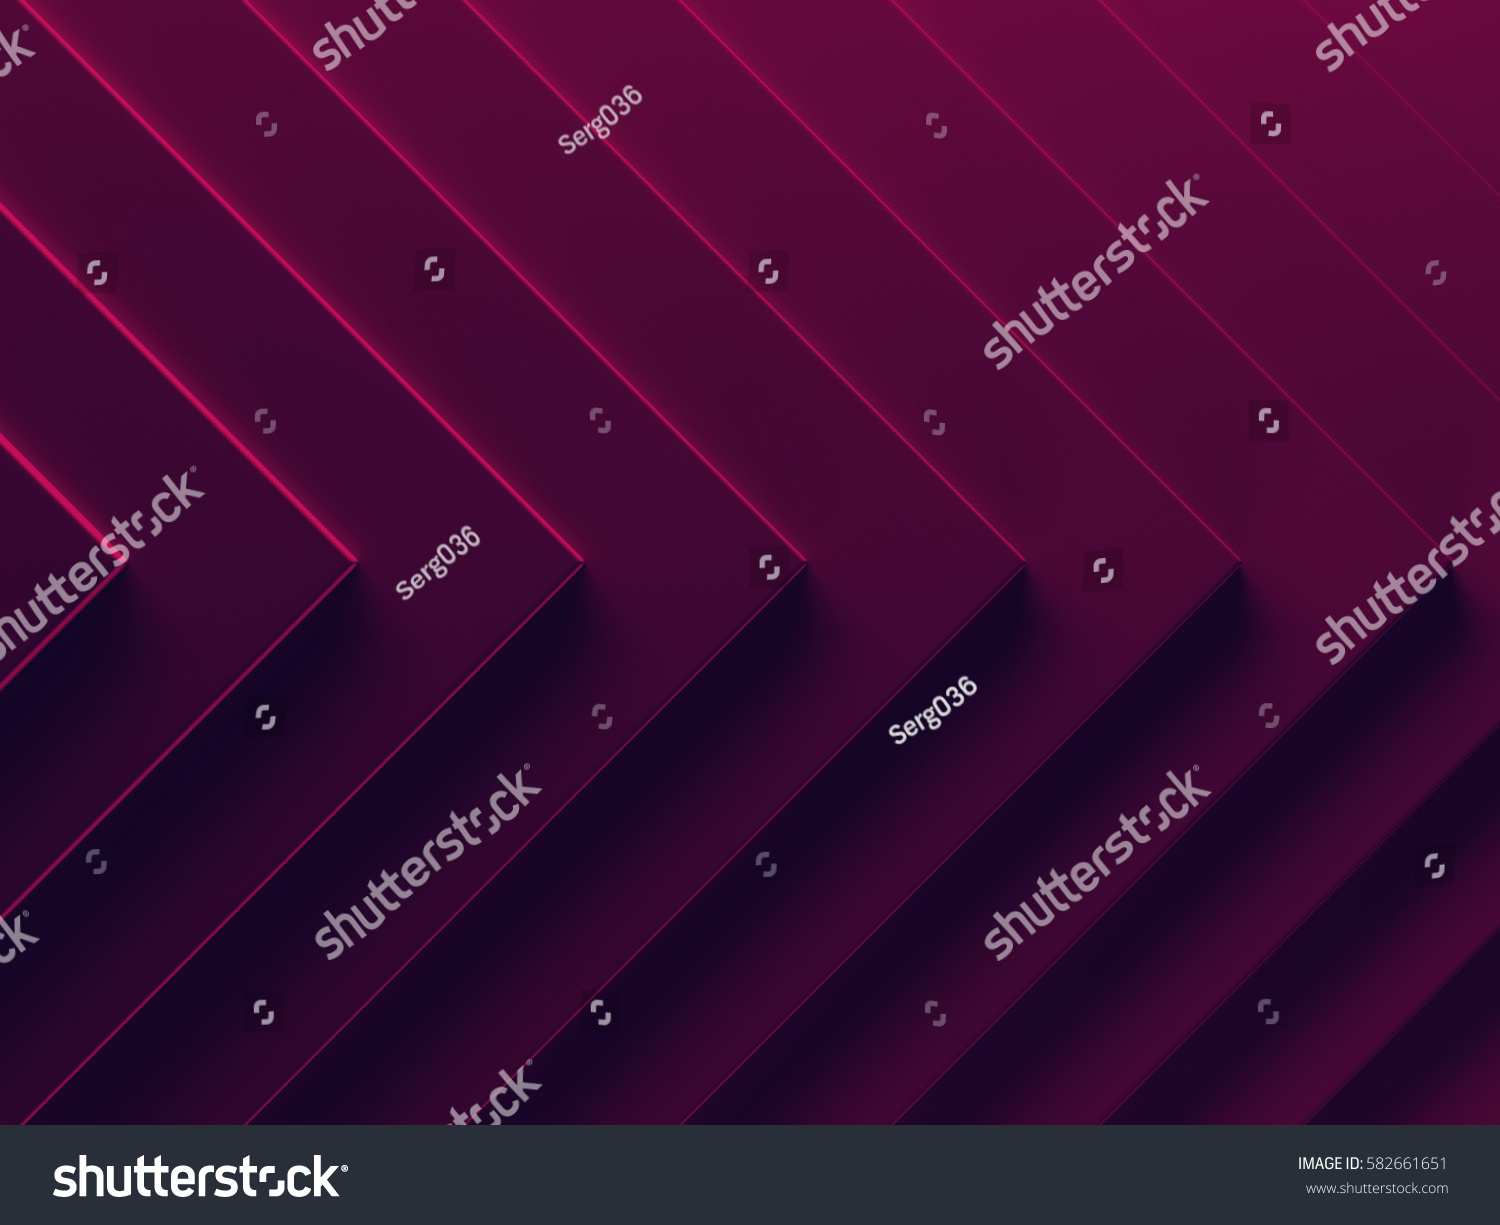 rich purple abstract geometric background textureのイラスト素材